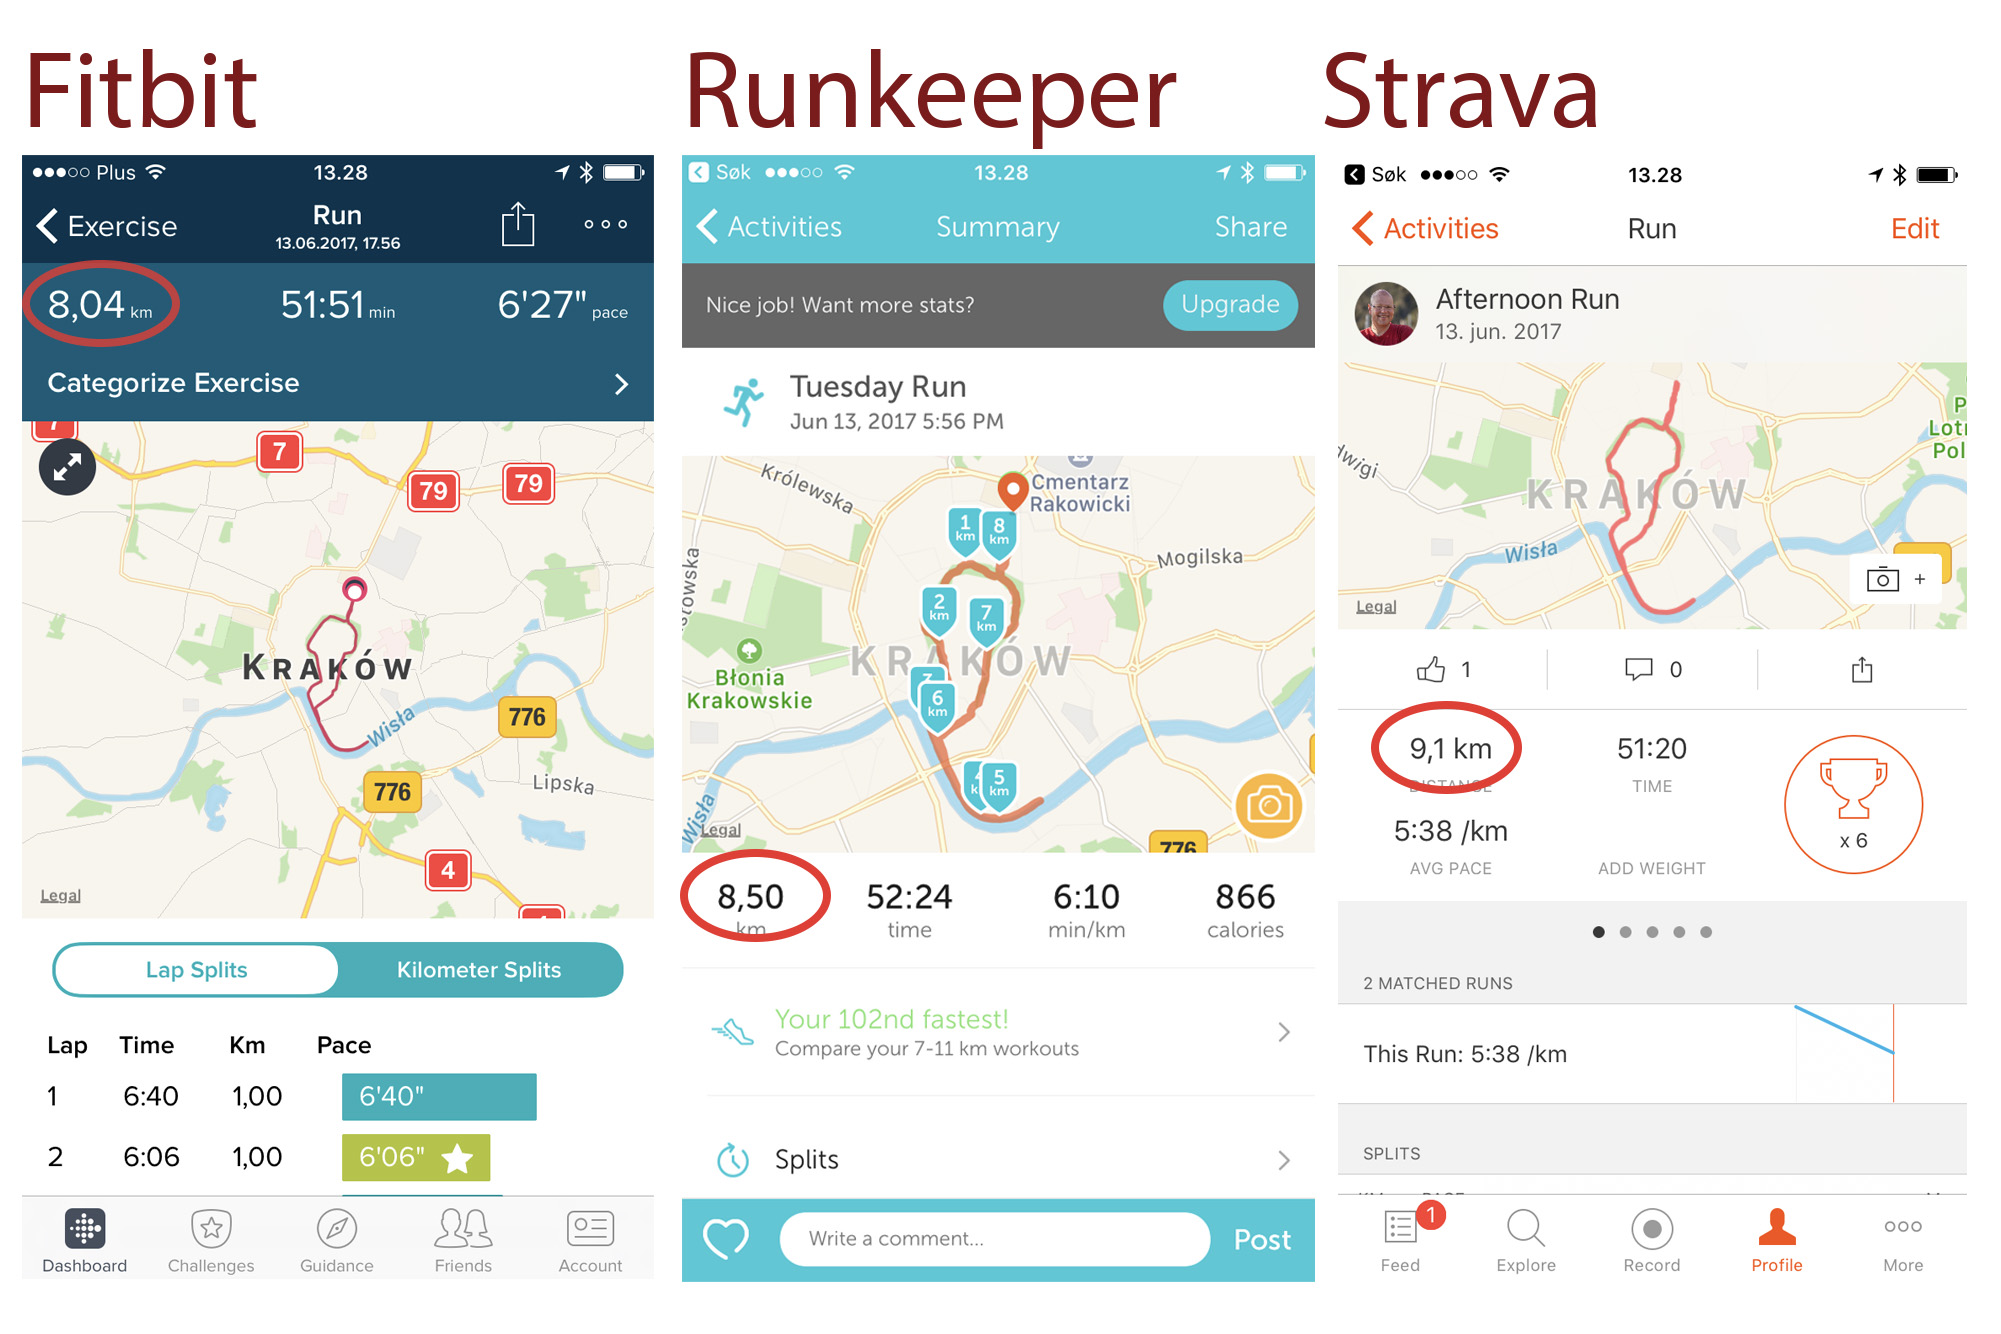 Comparing the running apps Fitbit , Runkeeper , and Strava